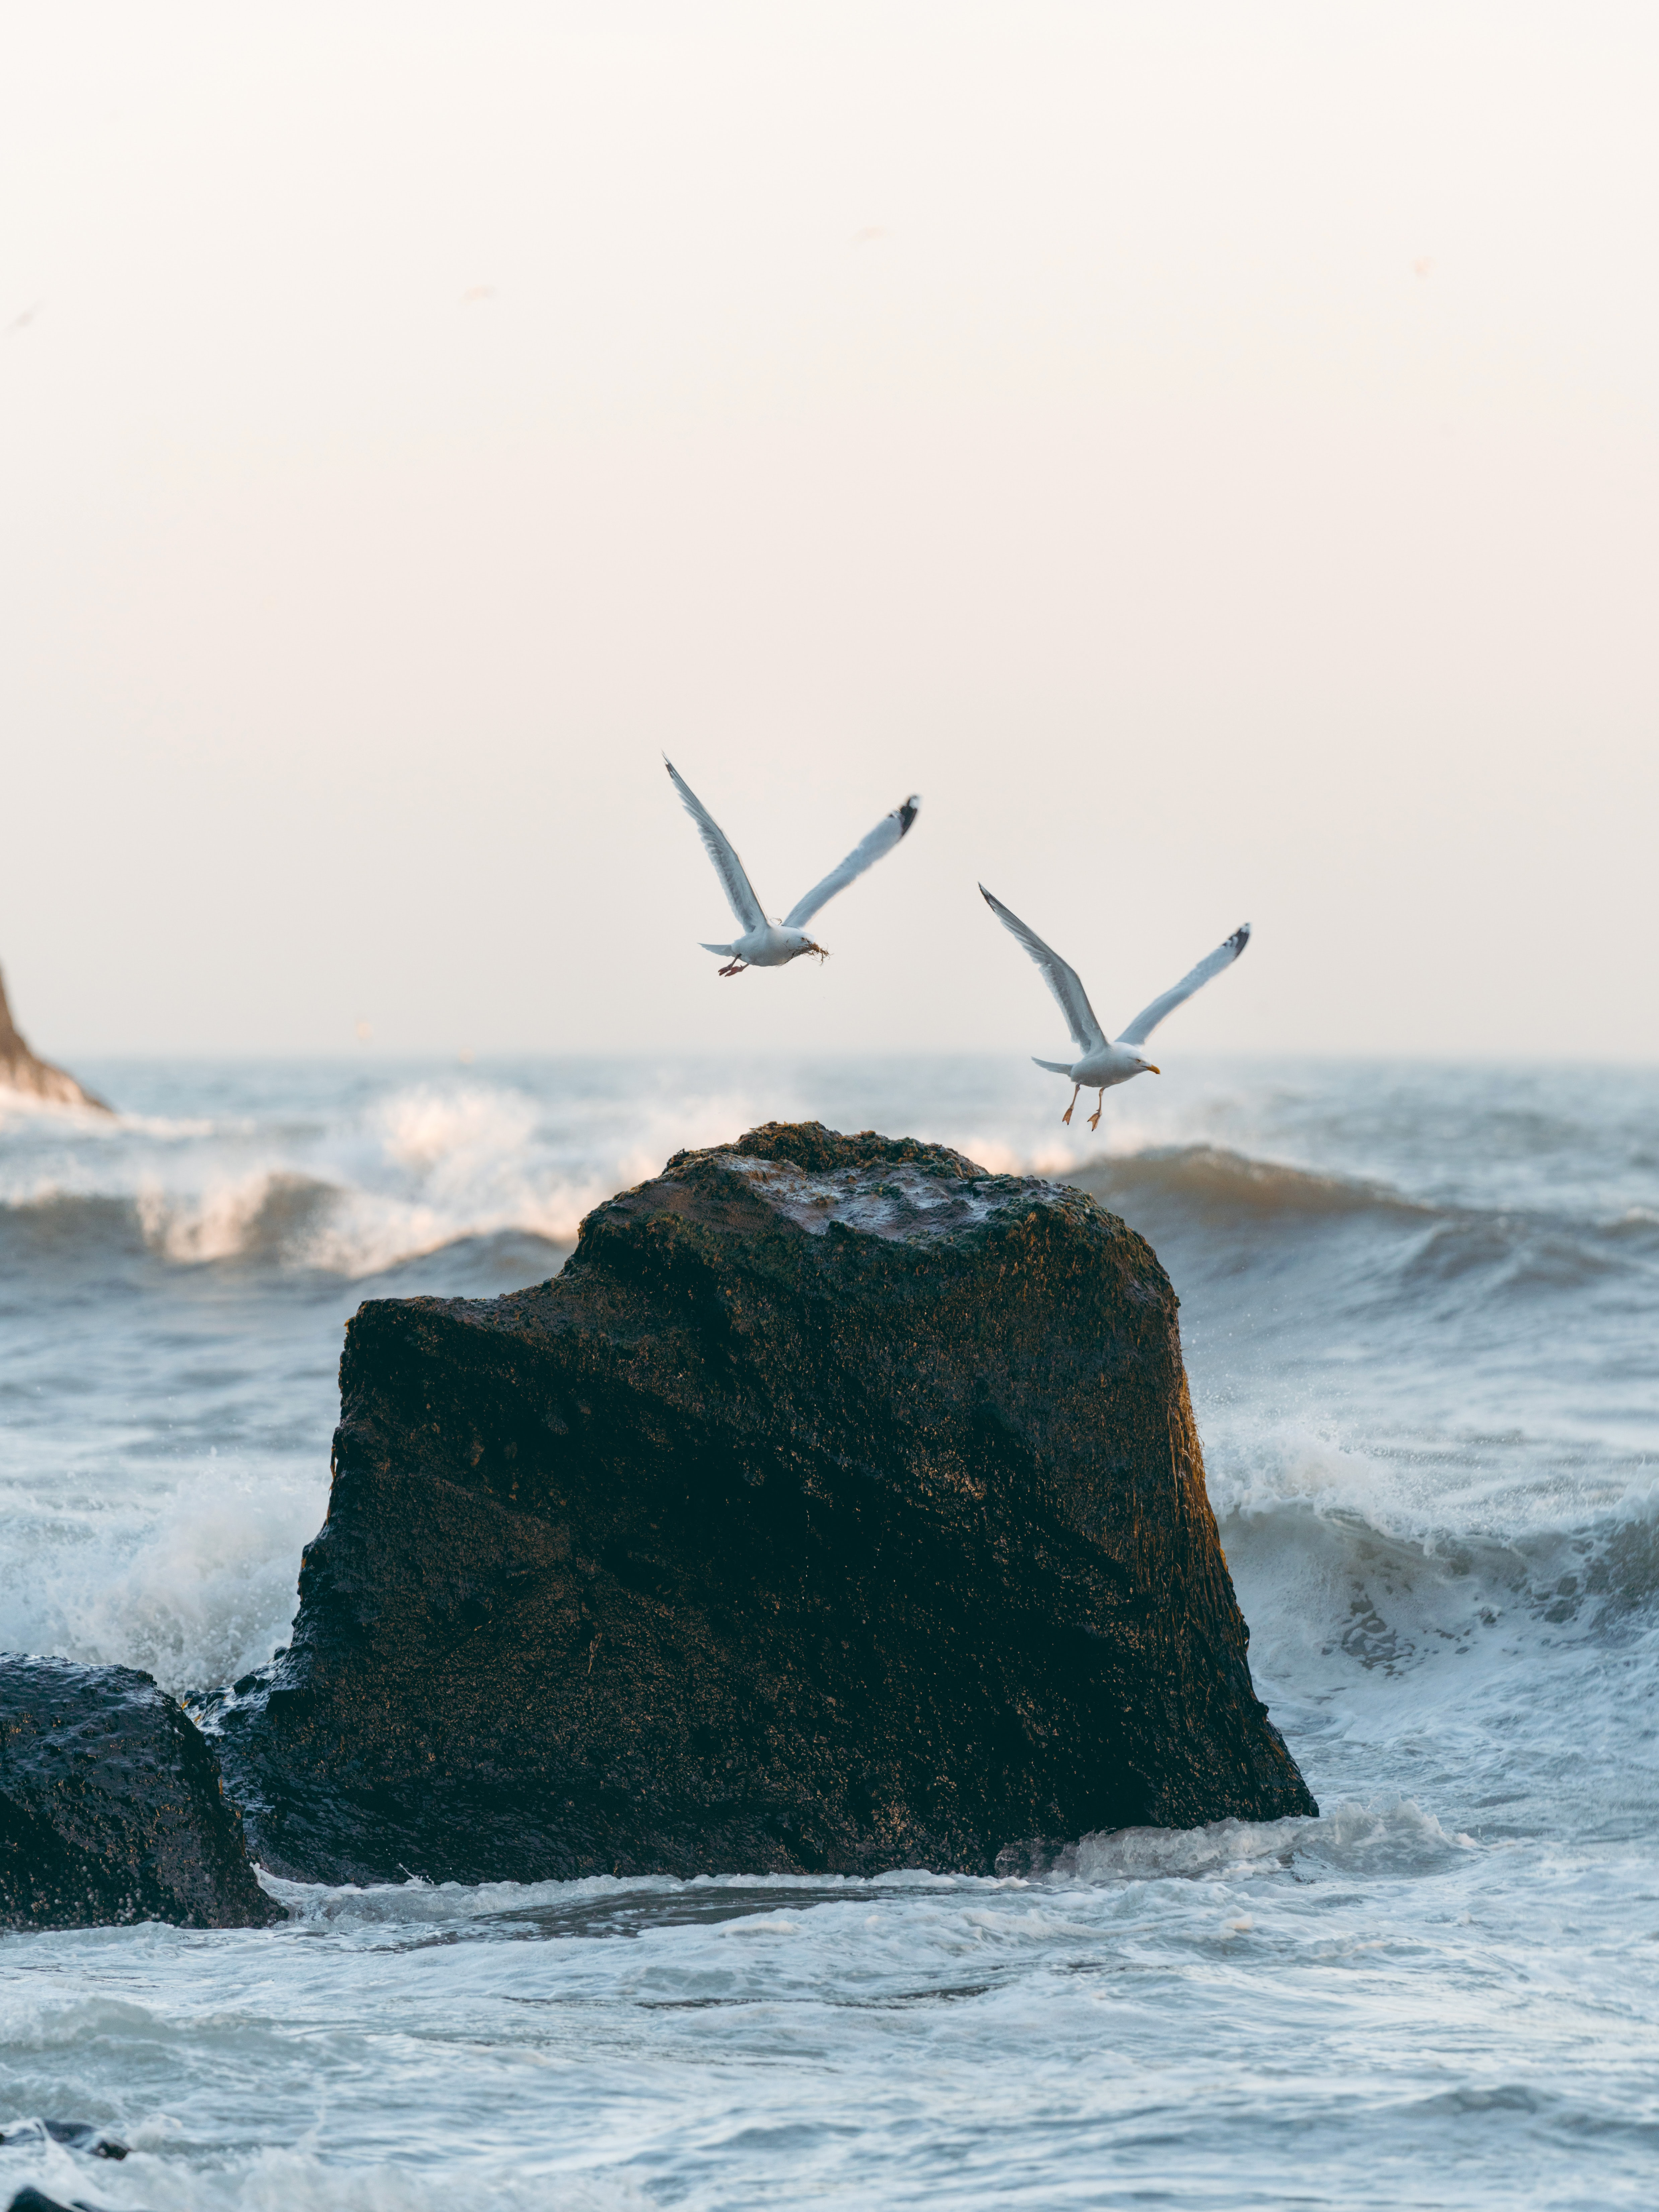 76065 download wallpaper Nature, Birds, Sea, Seagulls, Waves, Rocks, Spray screensavers and pictures for free